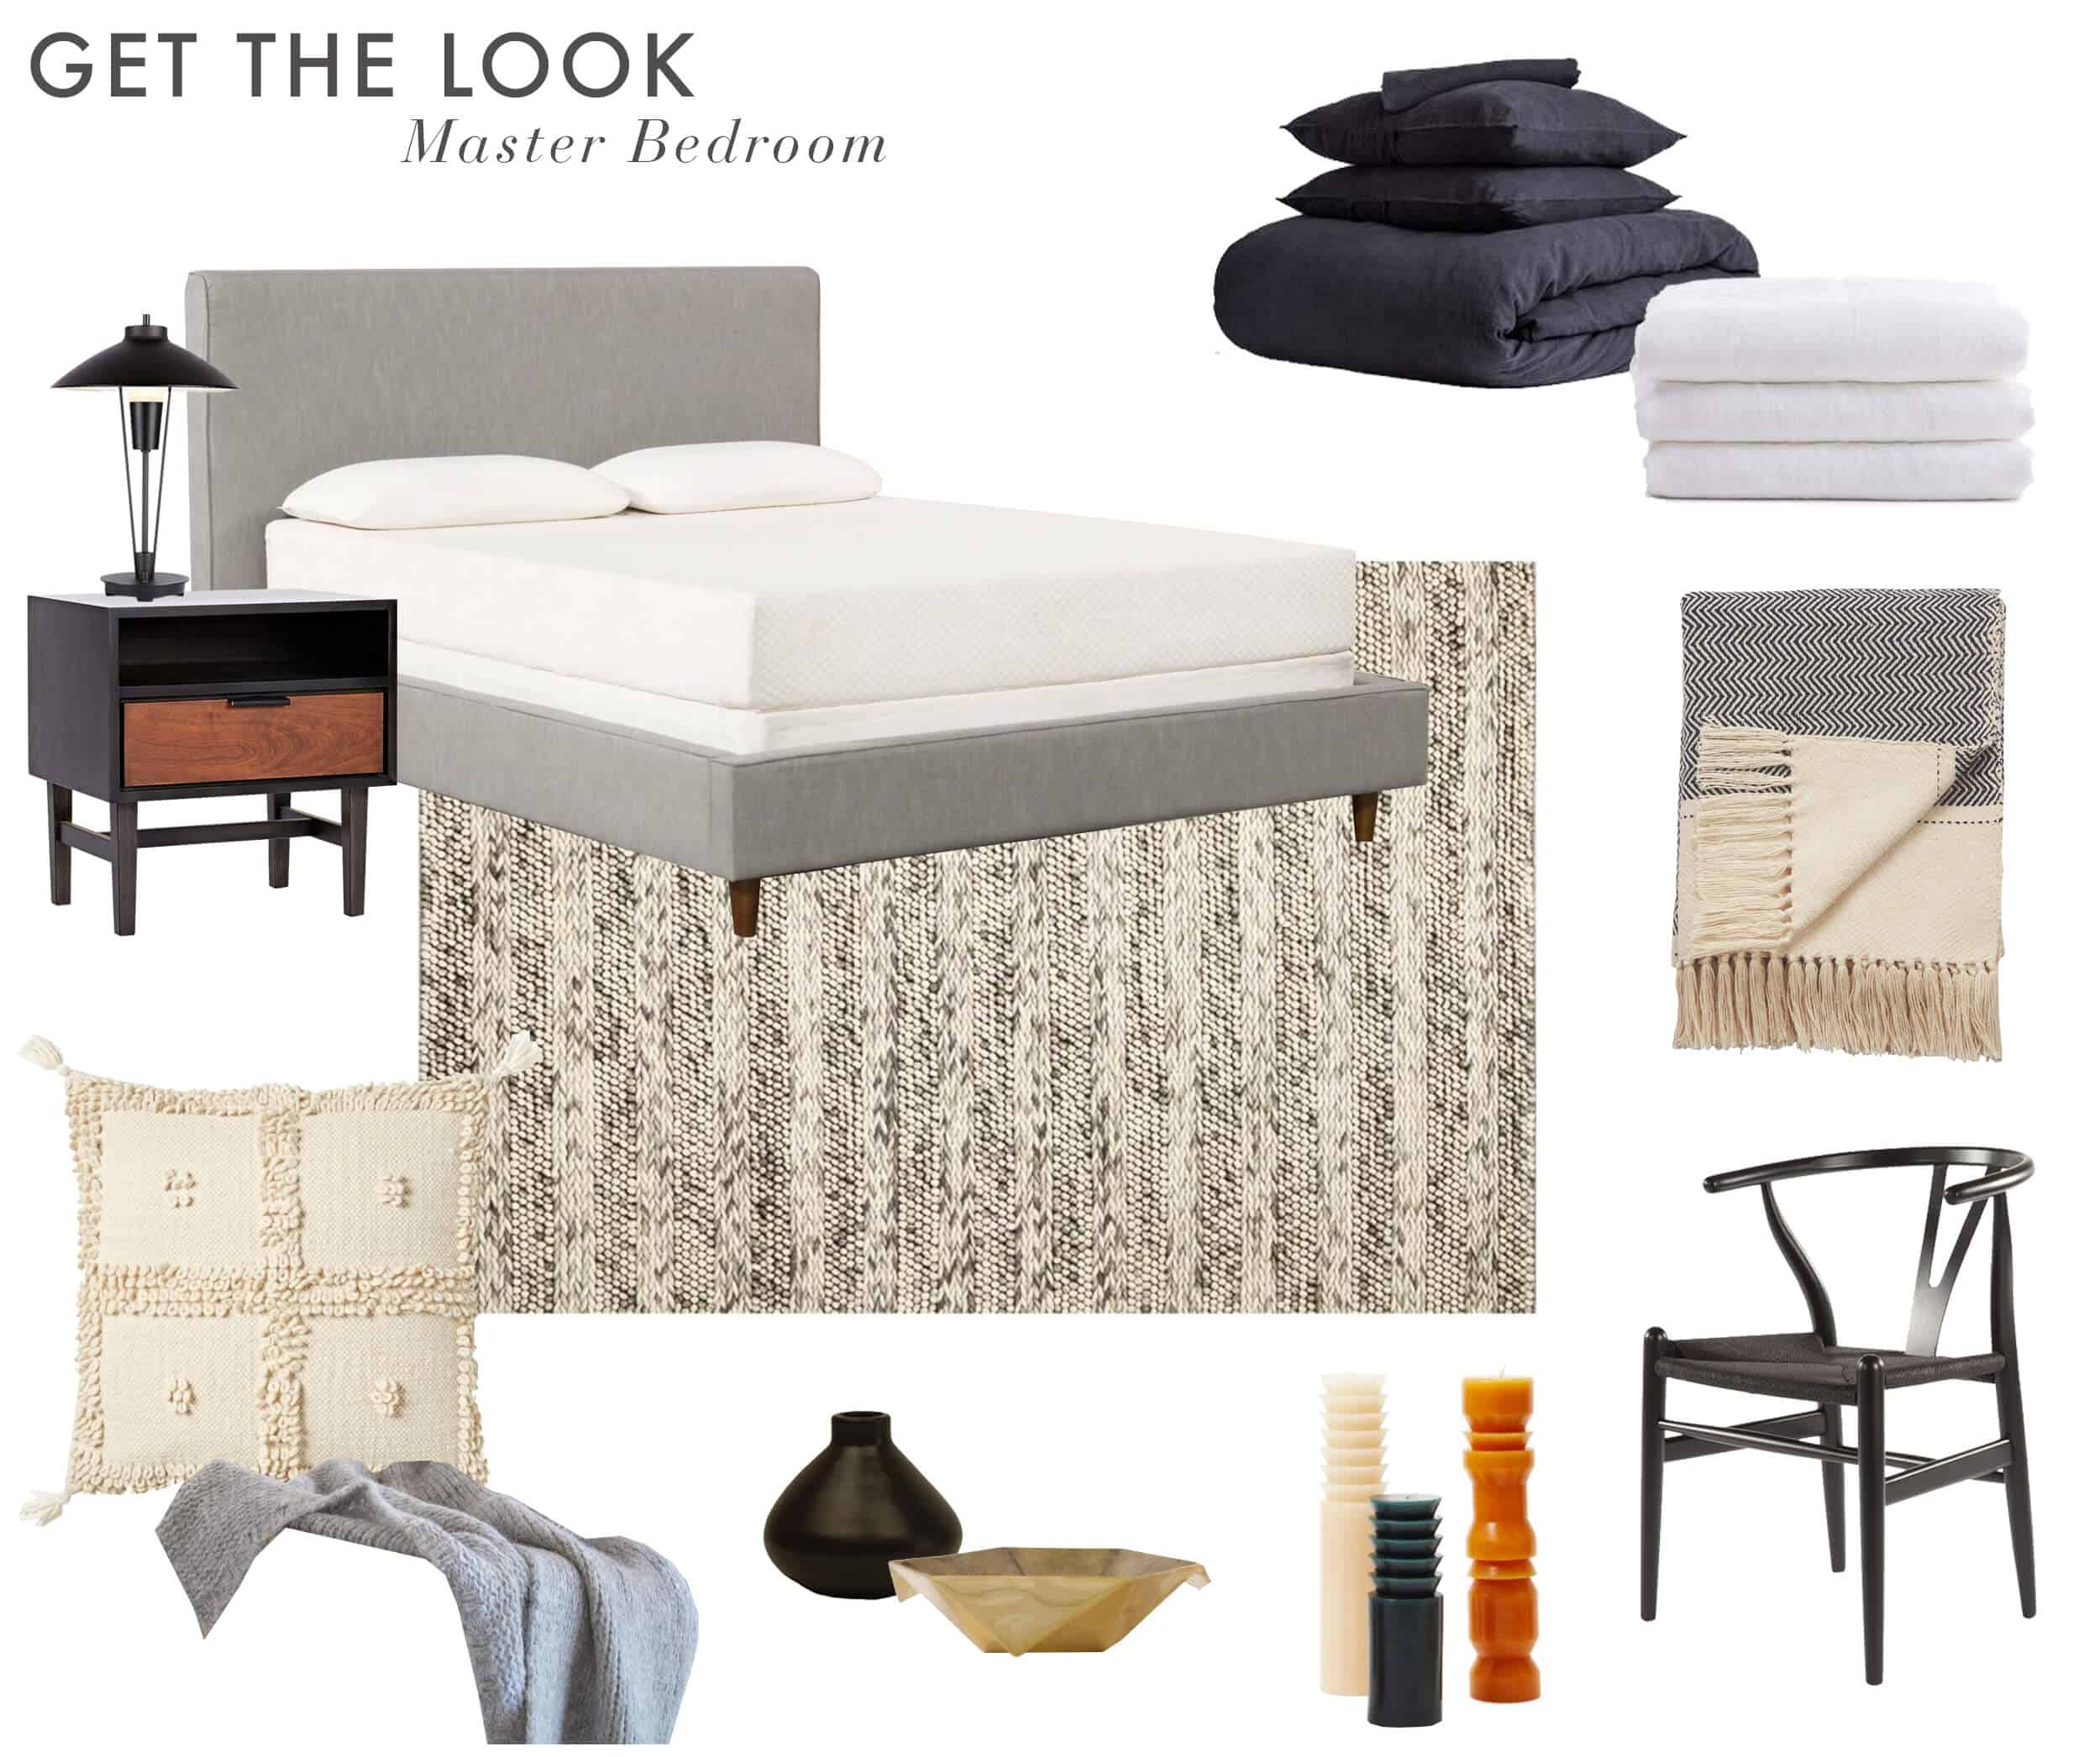 Emily Henderson_Parachute_Bedding_Scott Horne_Bedroom_Masculine_Monochromatic_Neutral_Soft_For Sale_Get the Look